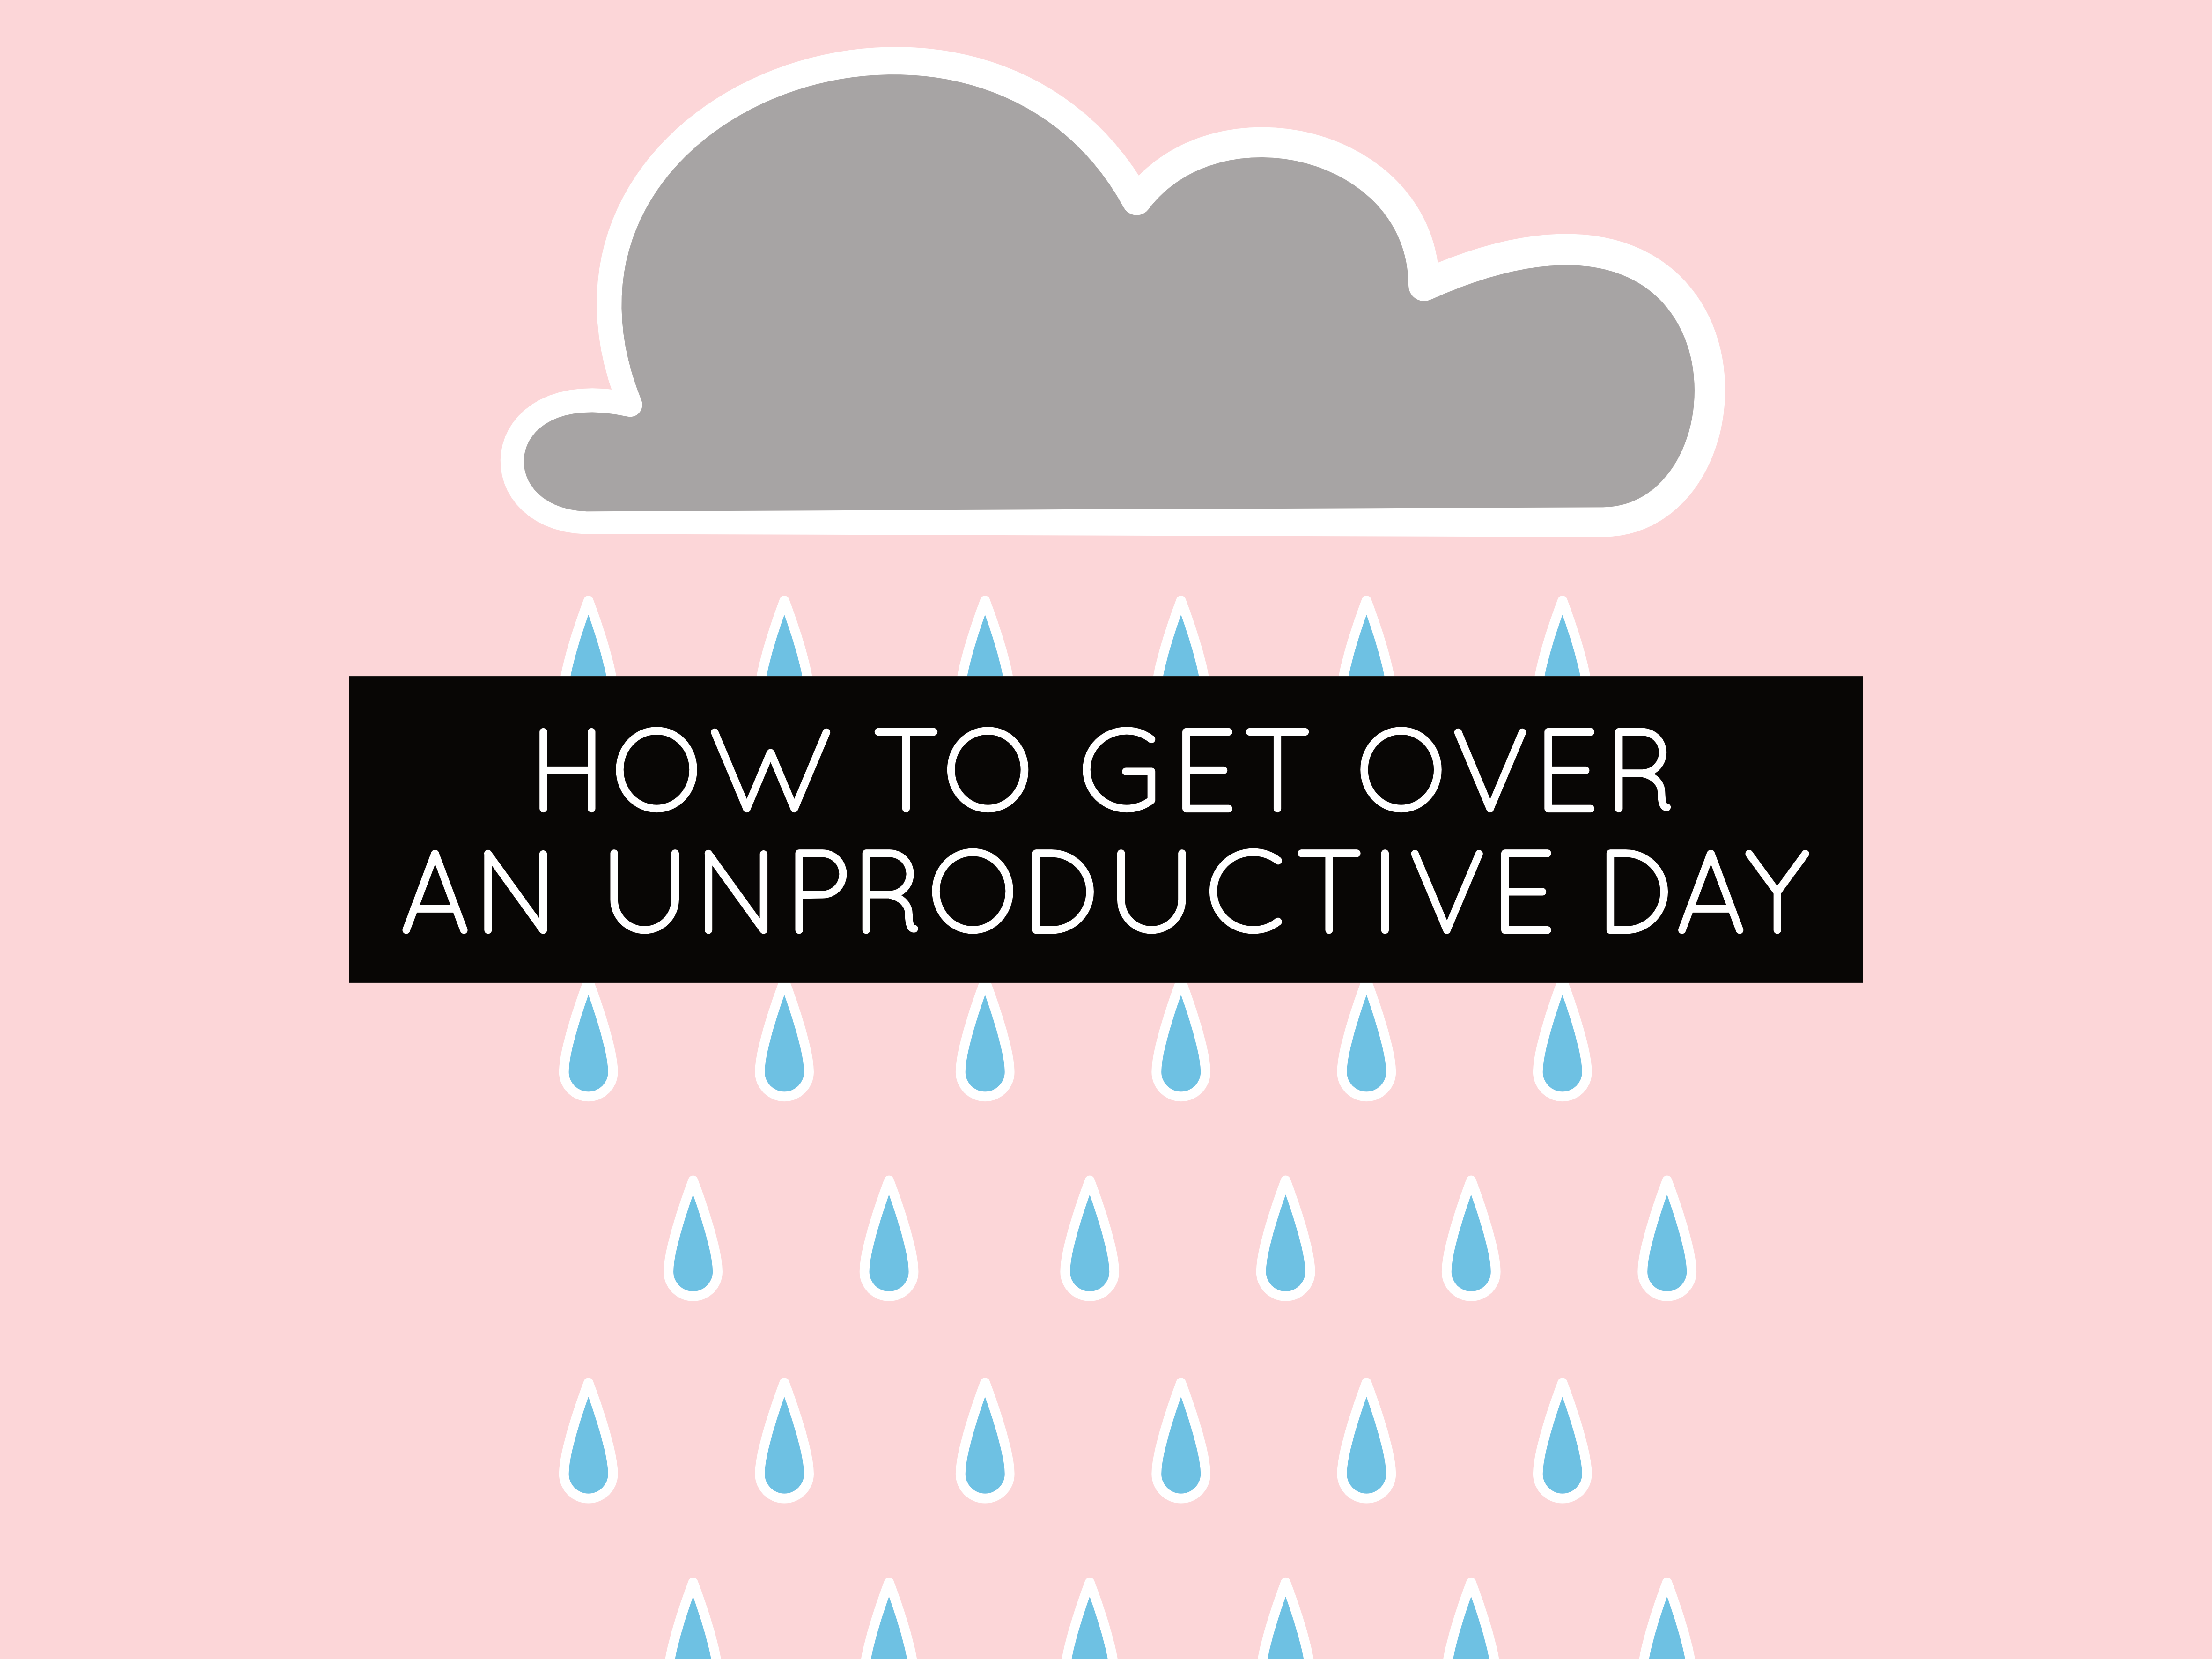 how to get over an unproductive day